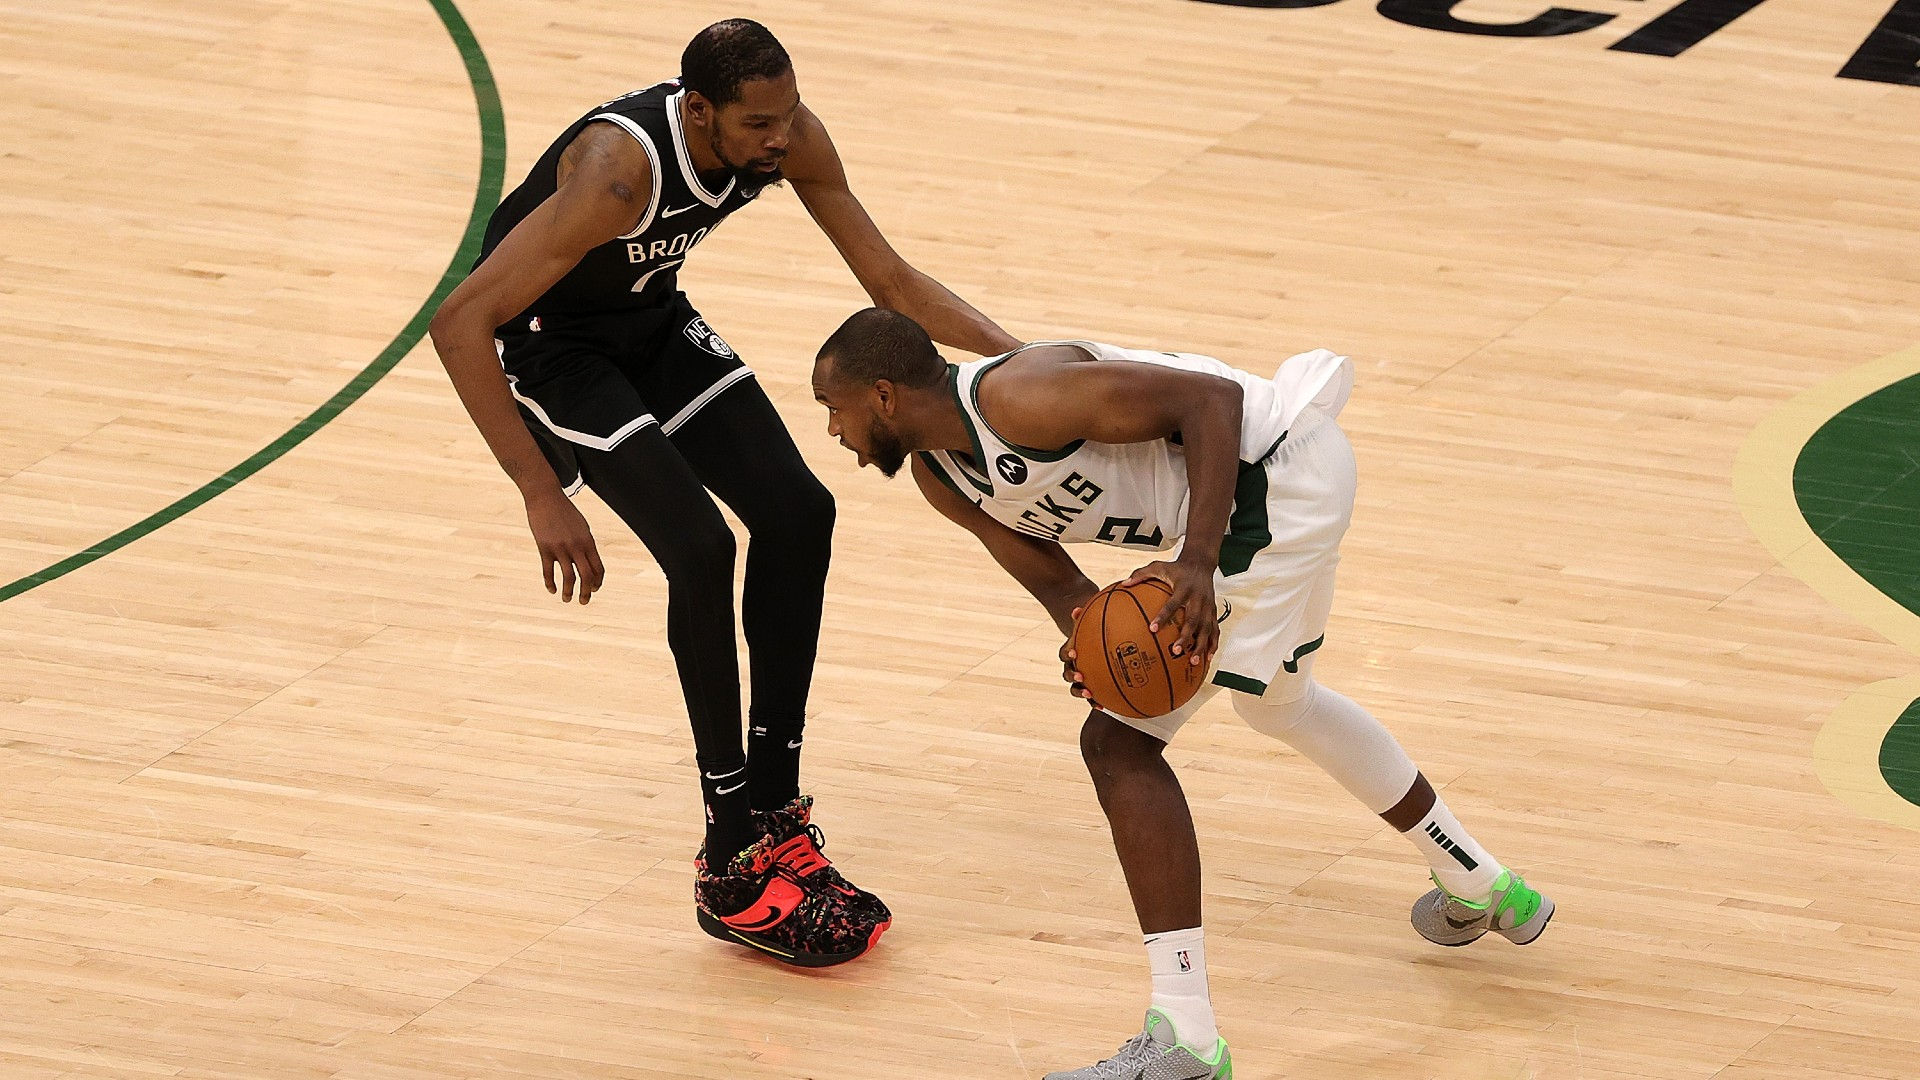 Khris Middleton gives the Bucks the stabilizing strength they need in Game 6 win over the Nets